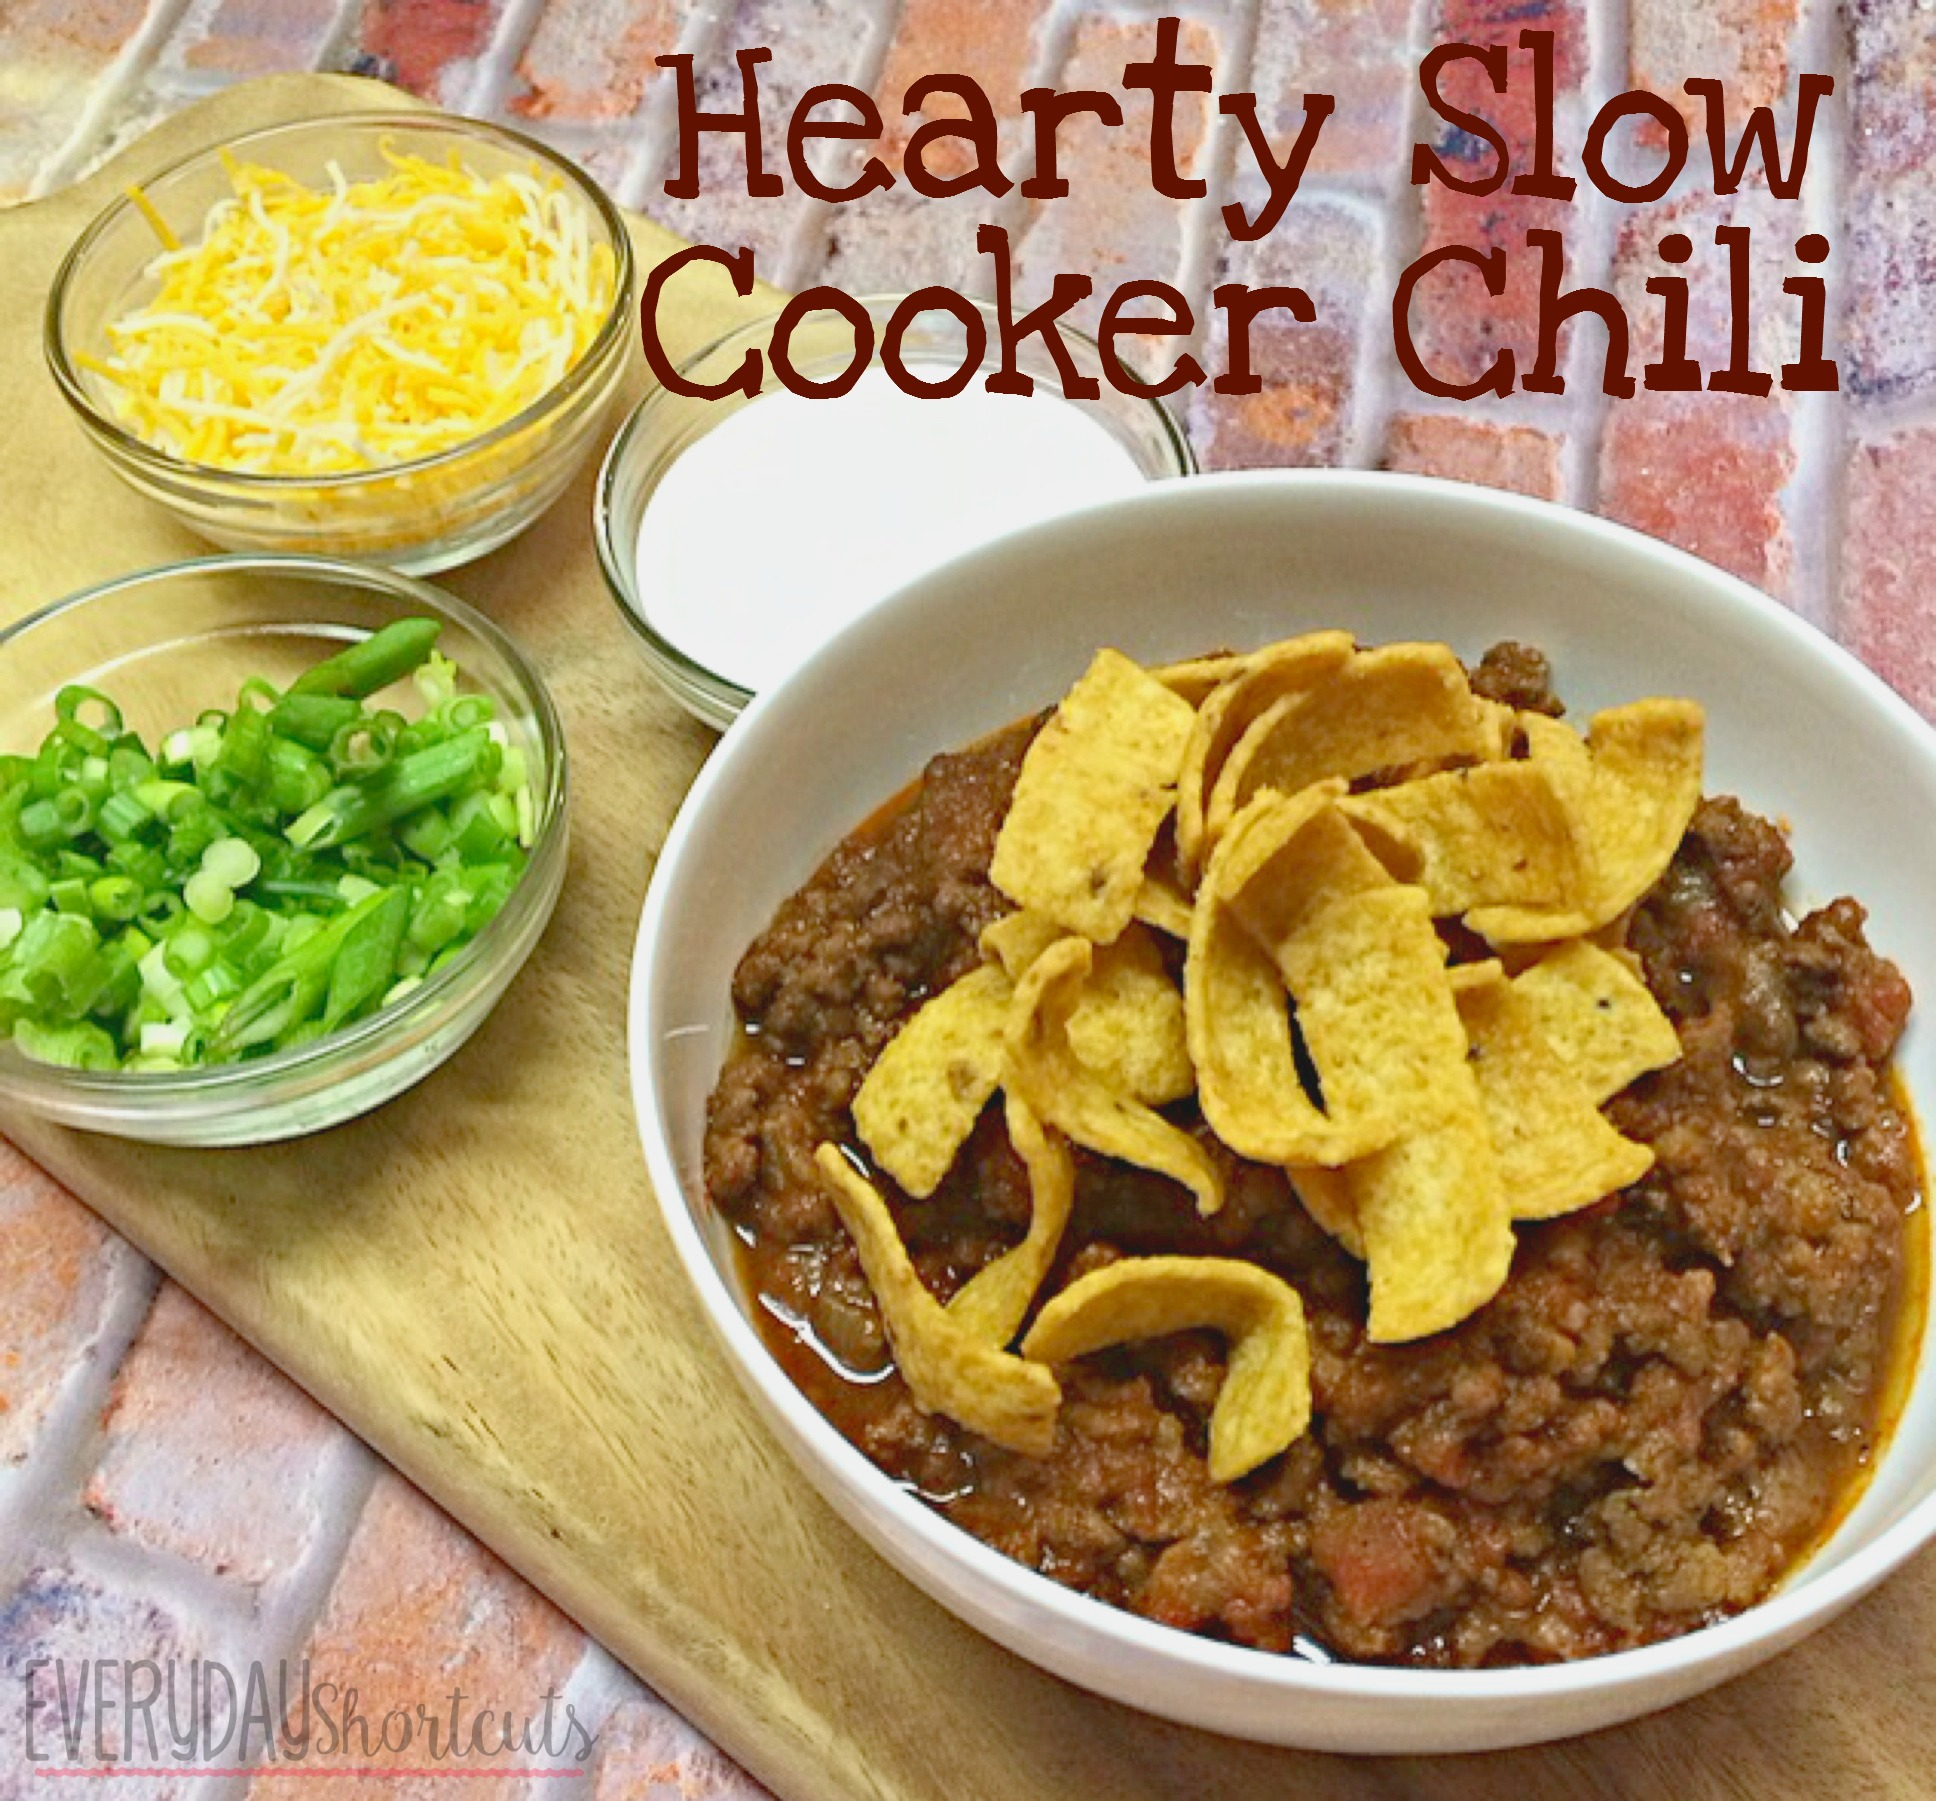 Hearty-Slow-Cooker-Chili